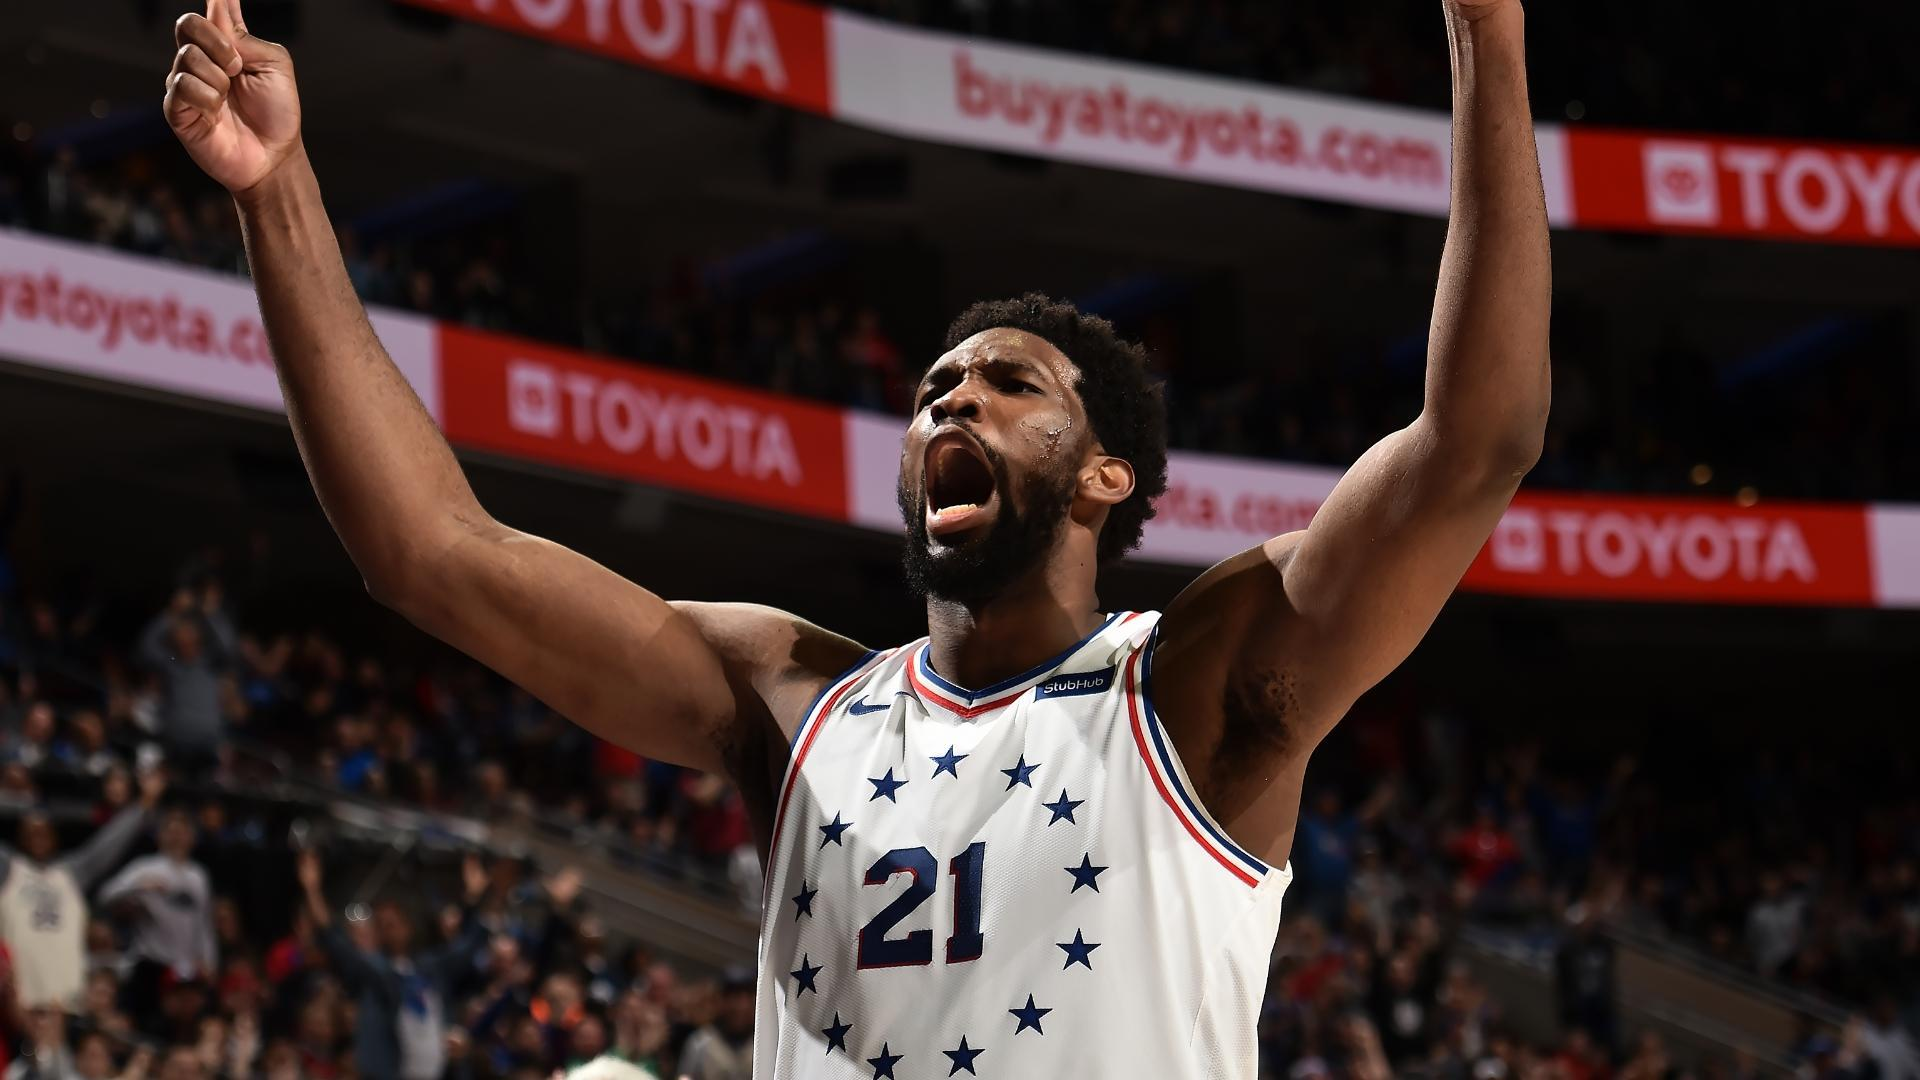 Embiid drops 33 points to lead 76ers past Pacers